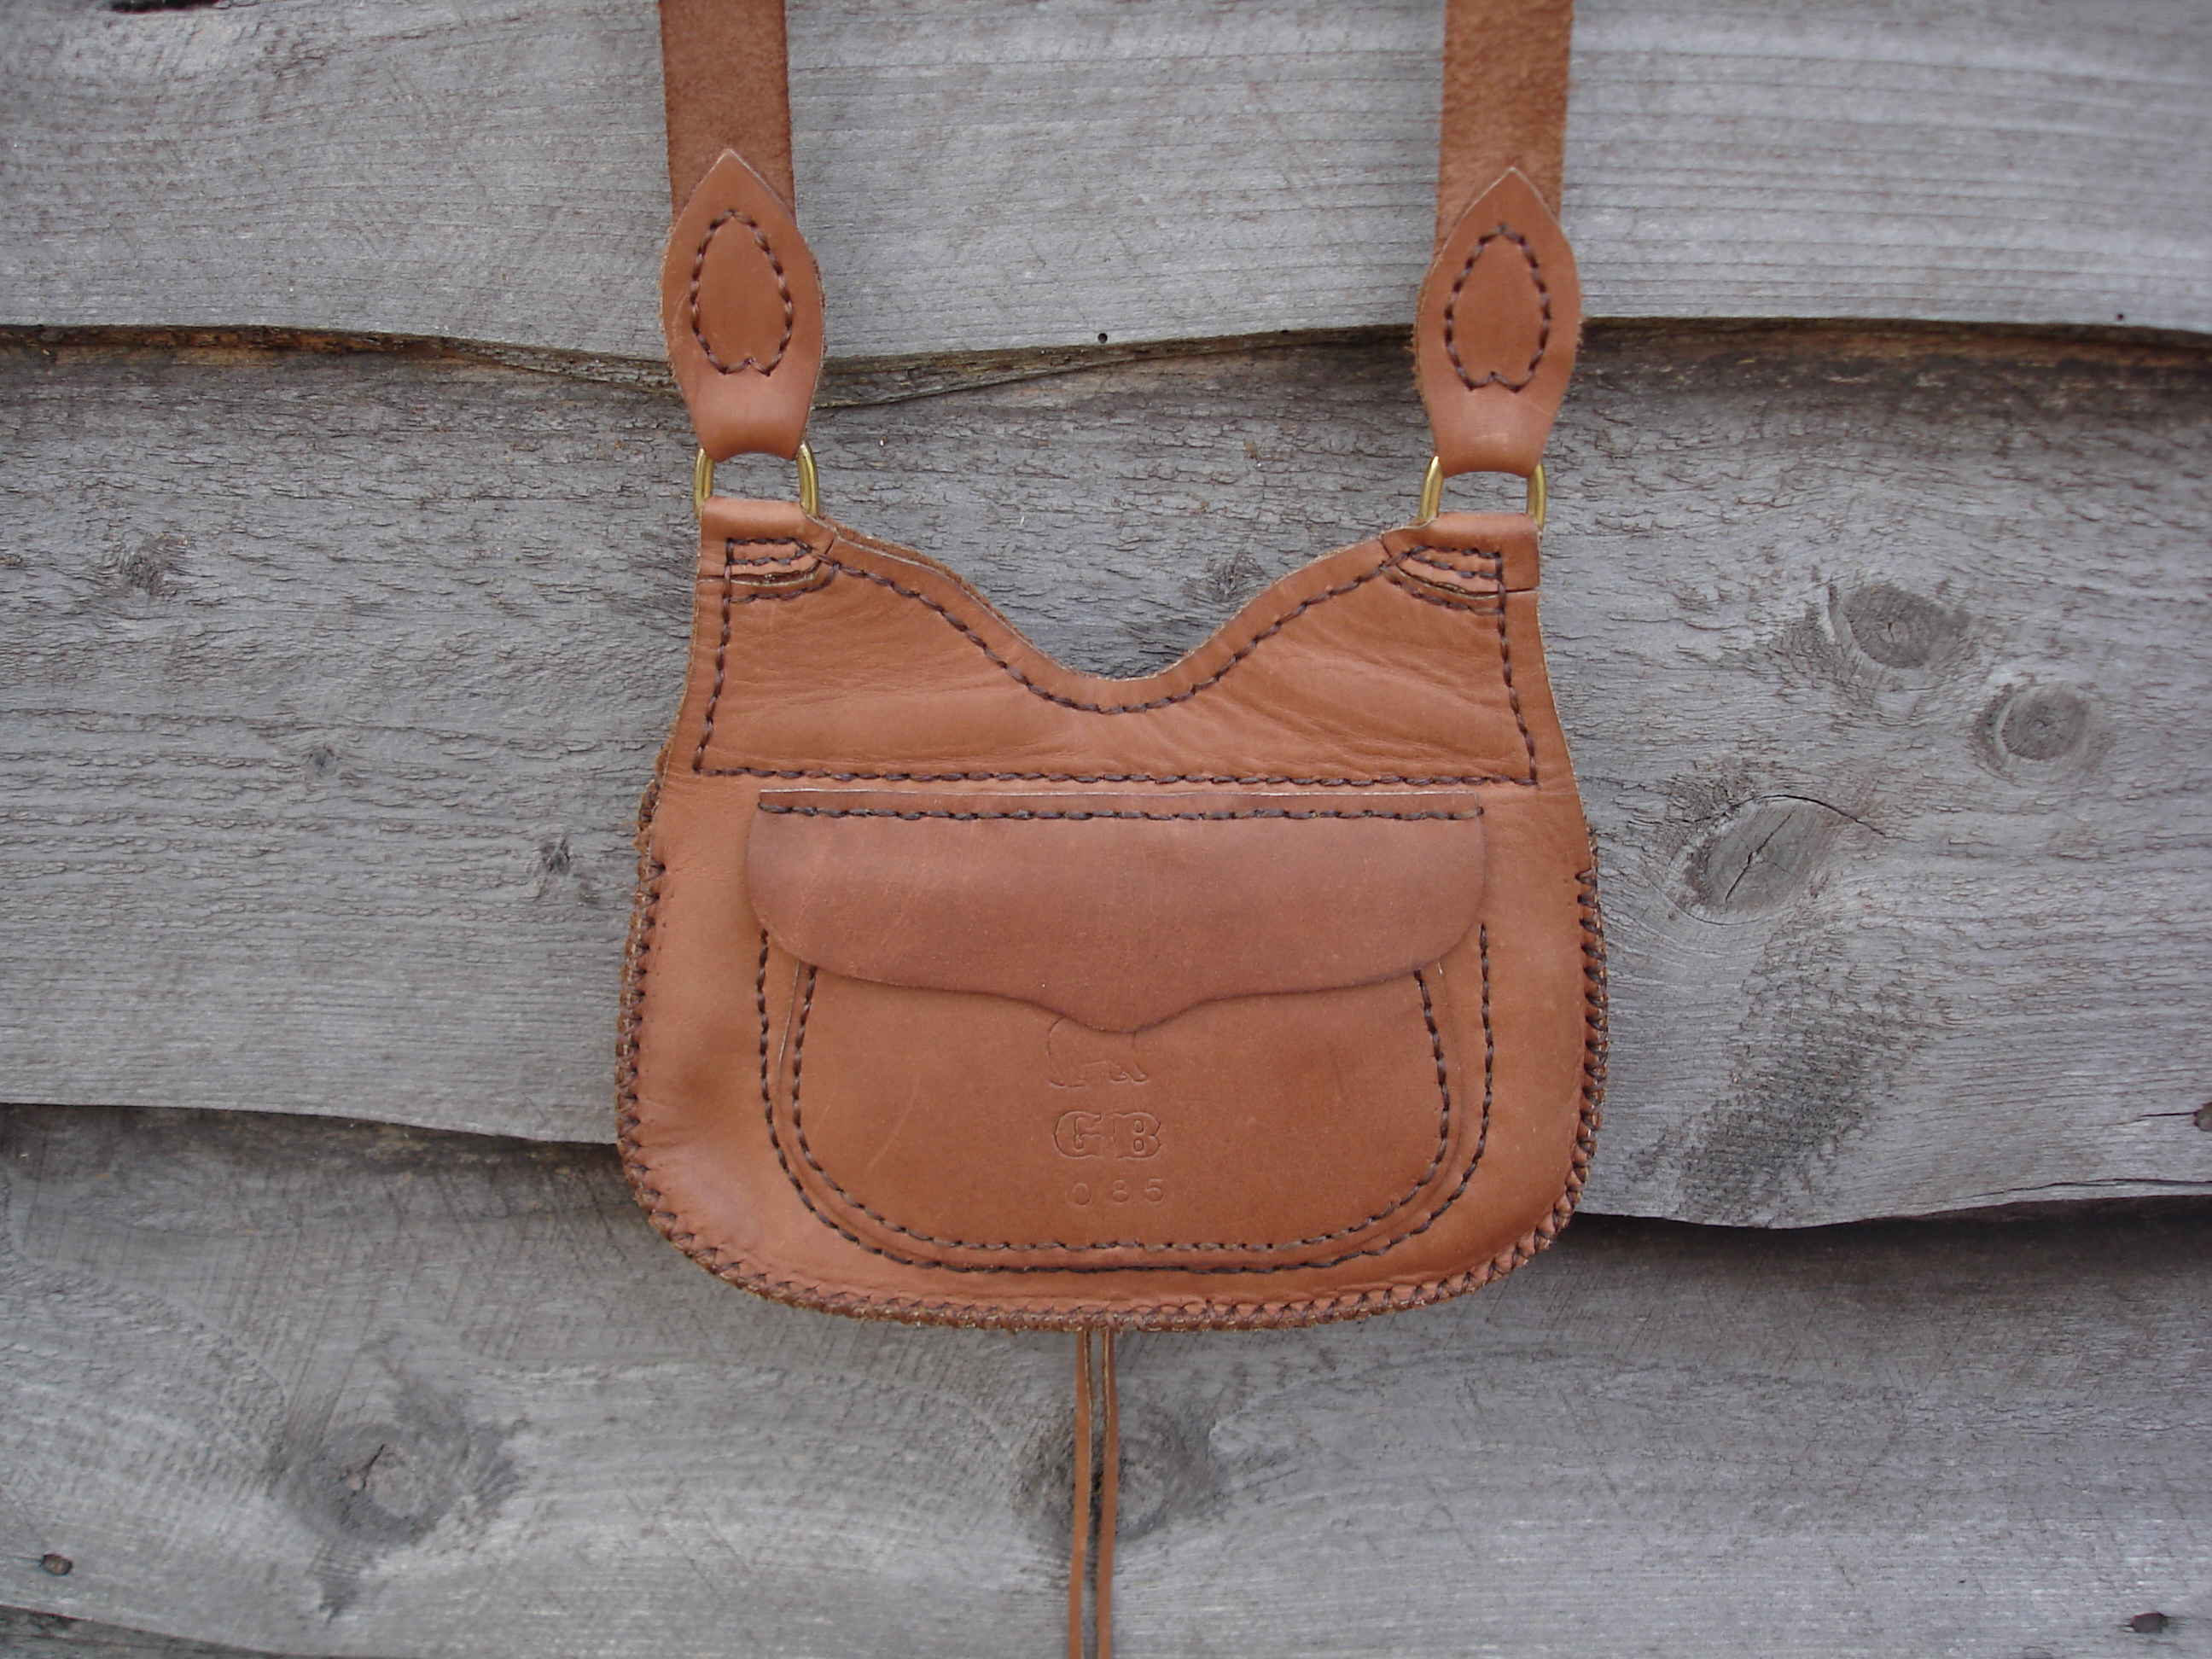 119 Made By Gb Trade Mark Las Purse Back Pocket Possible